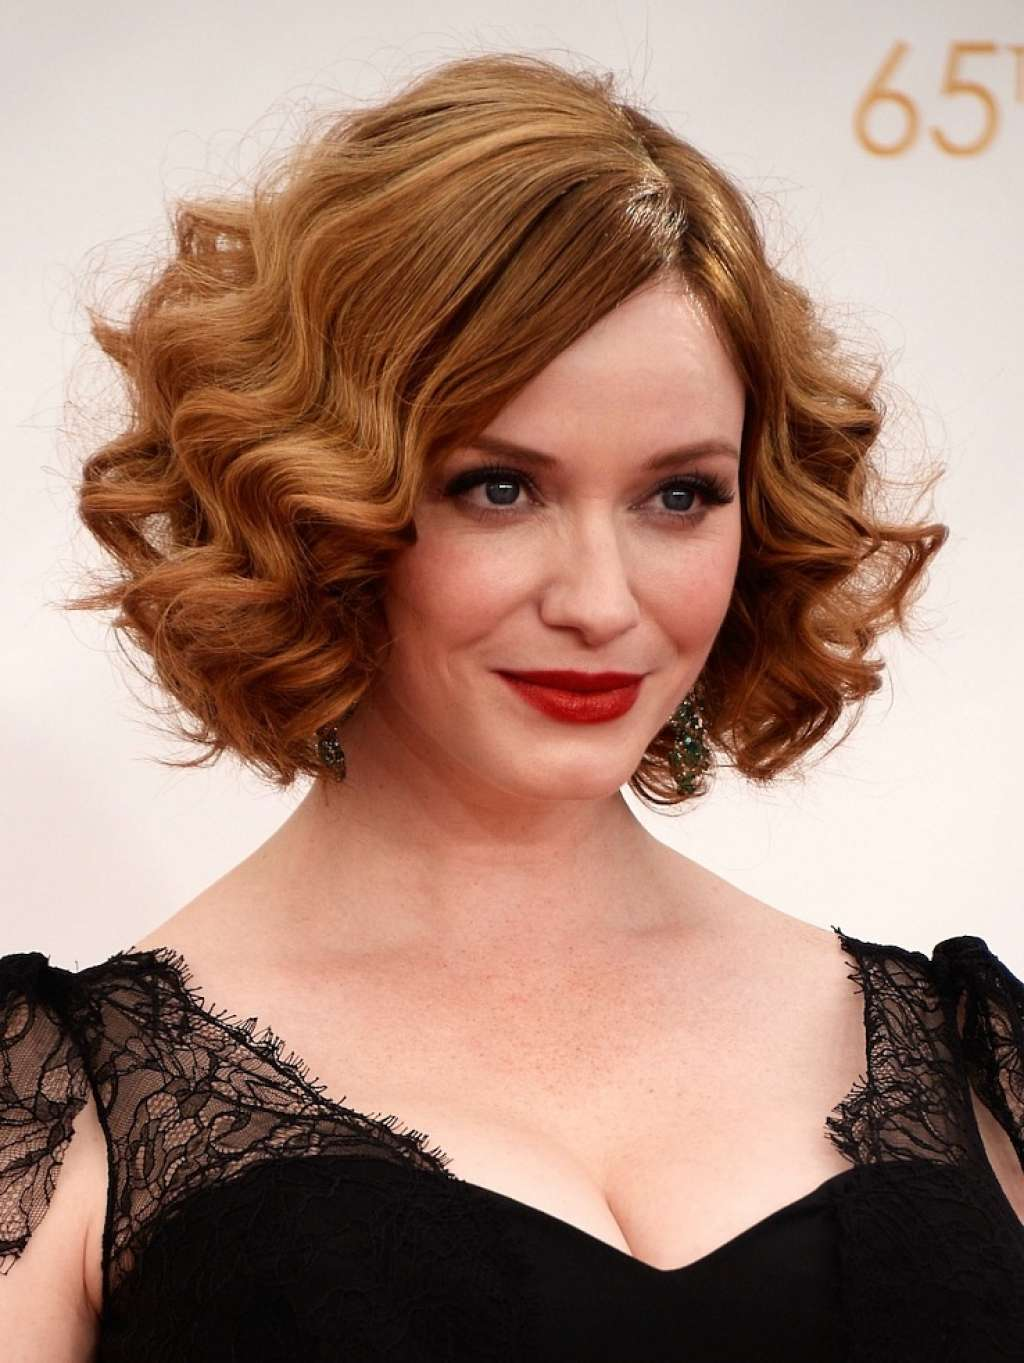 flapper hairstyles for curly hair - HD1024×1363